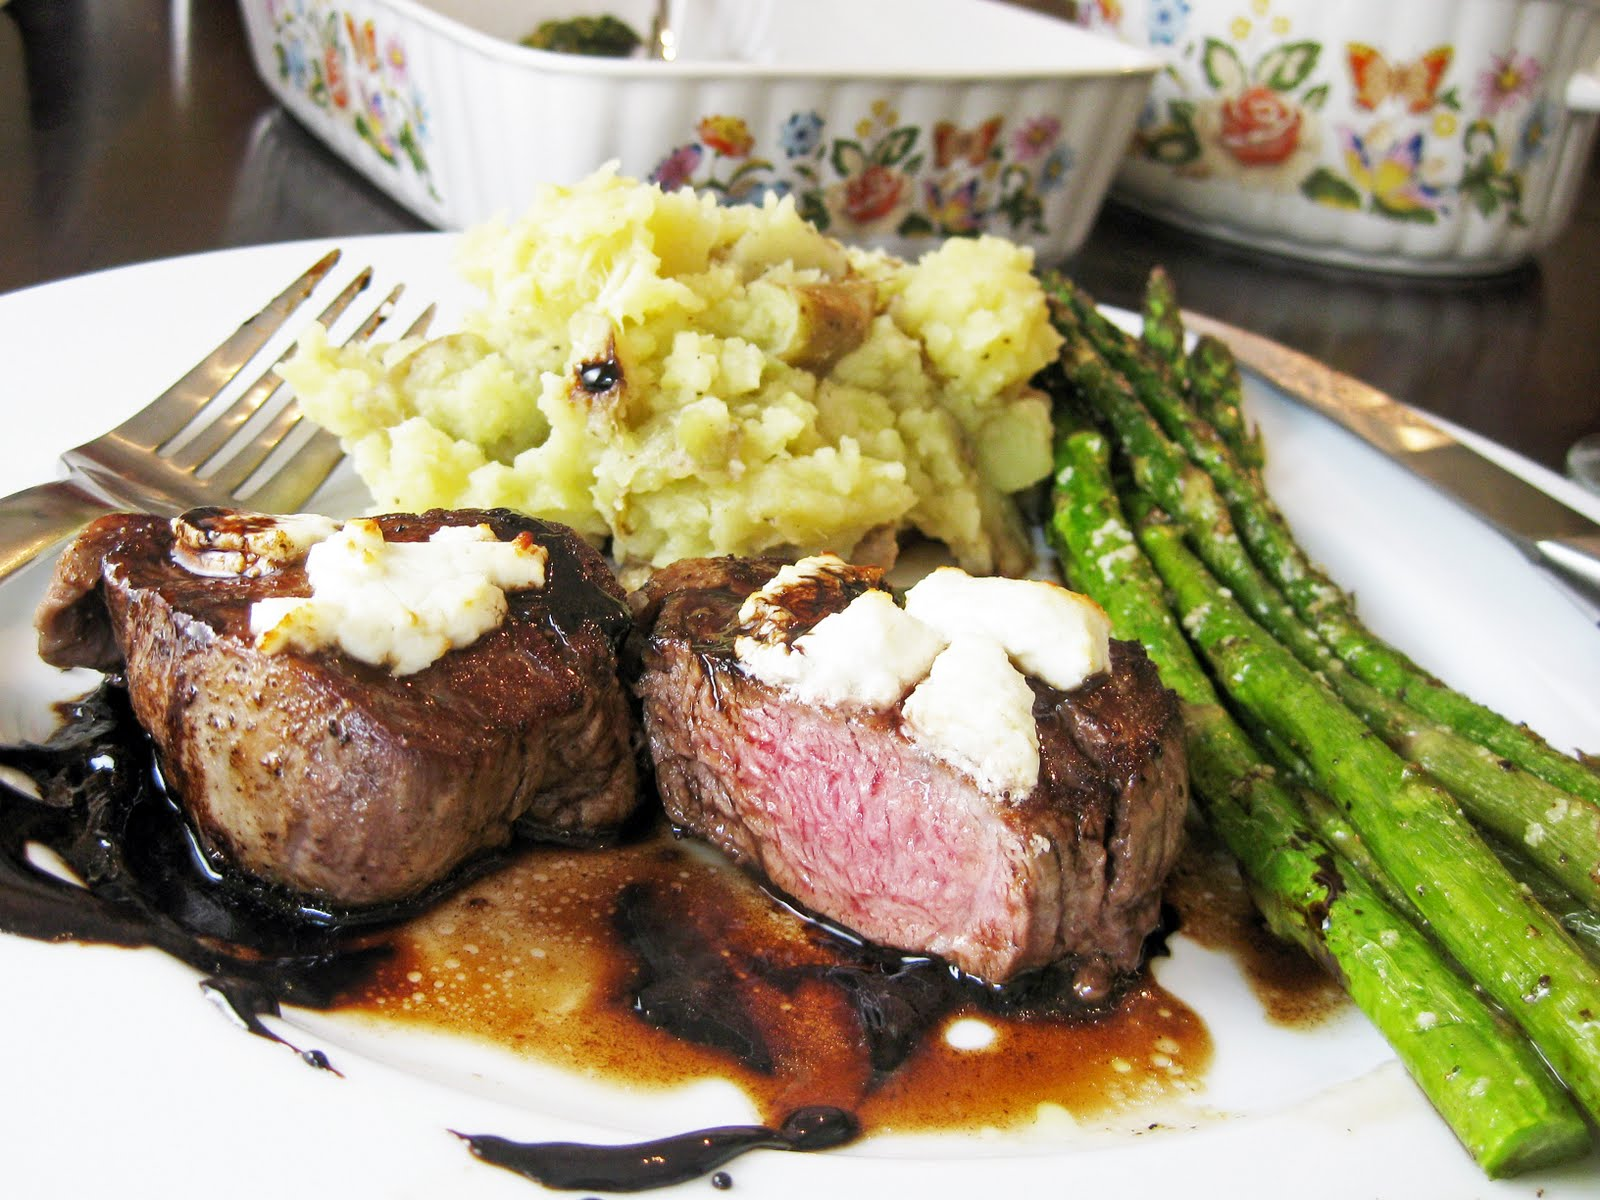 Filet Mignon With Goat Cheese and Balsamic Reduction